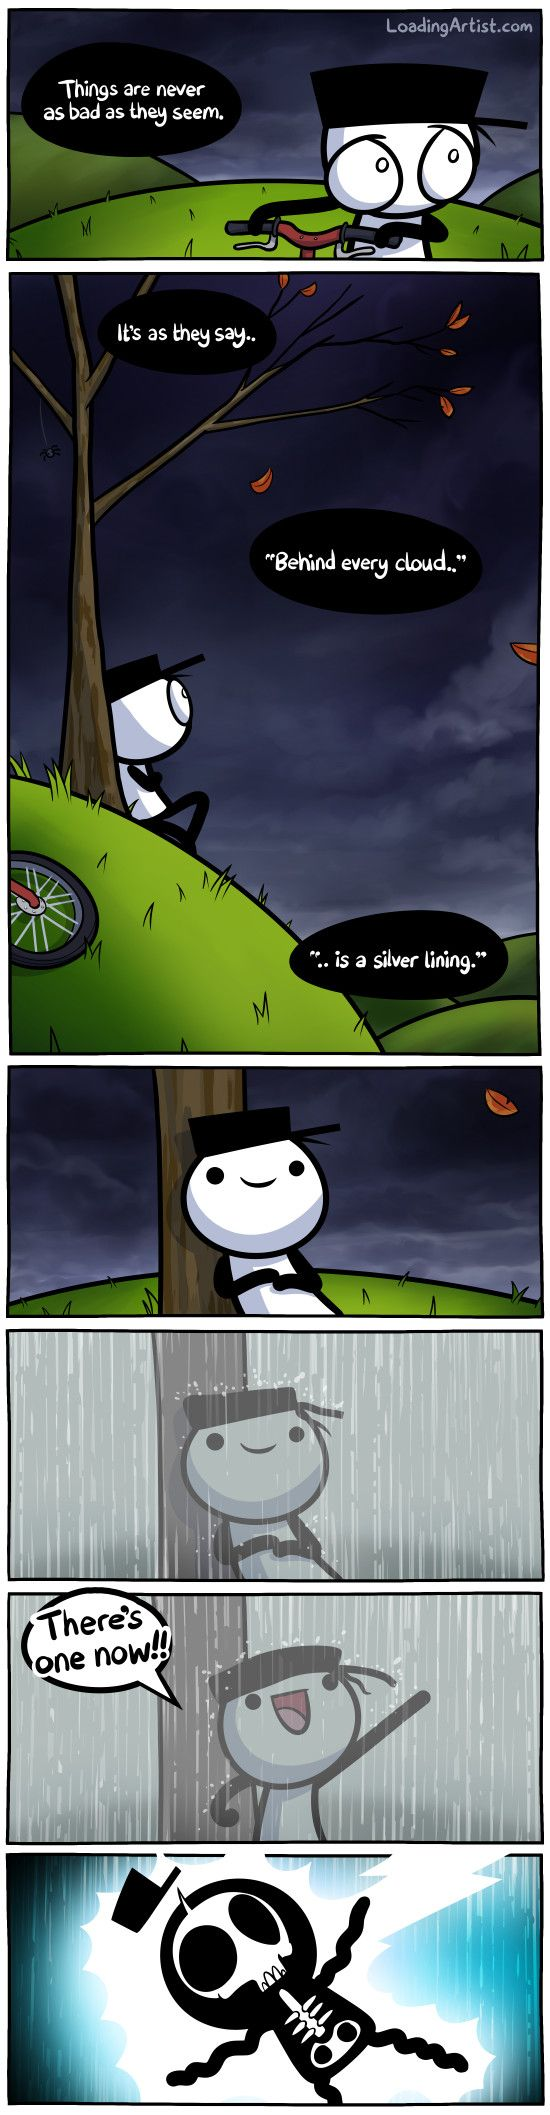 Things are never as bad as they seem.. click to view the full comic!